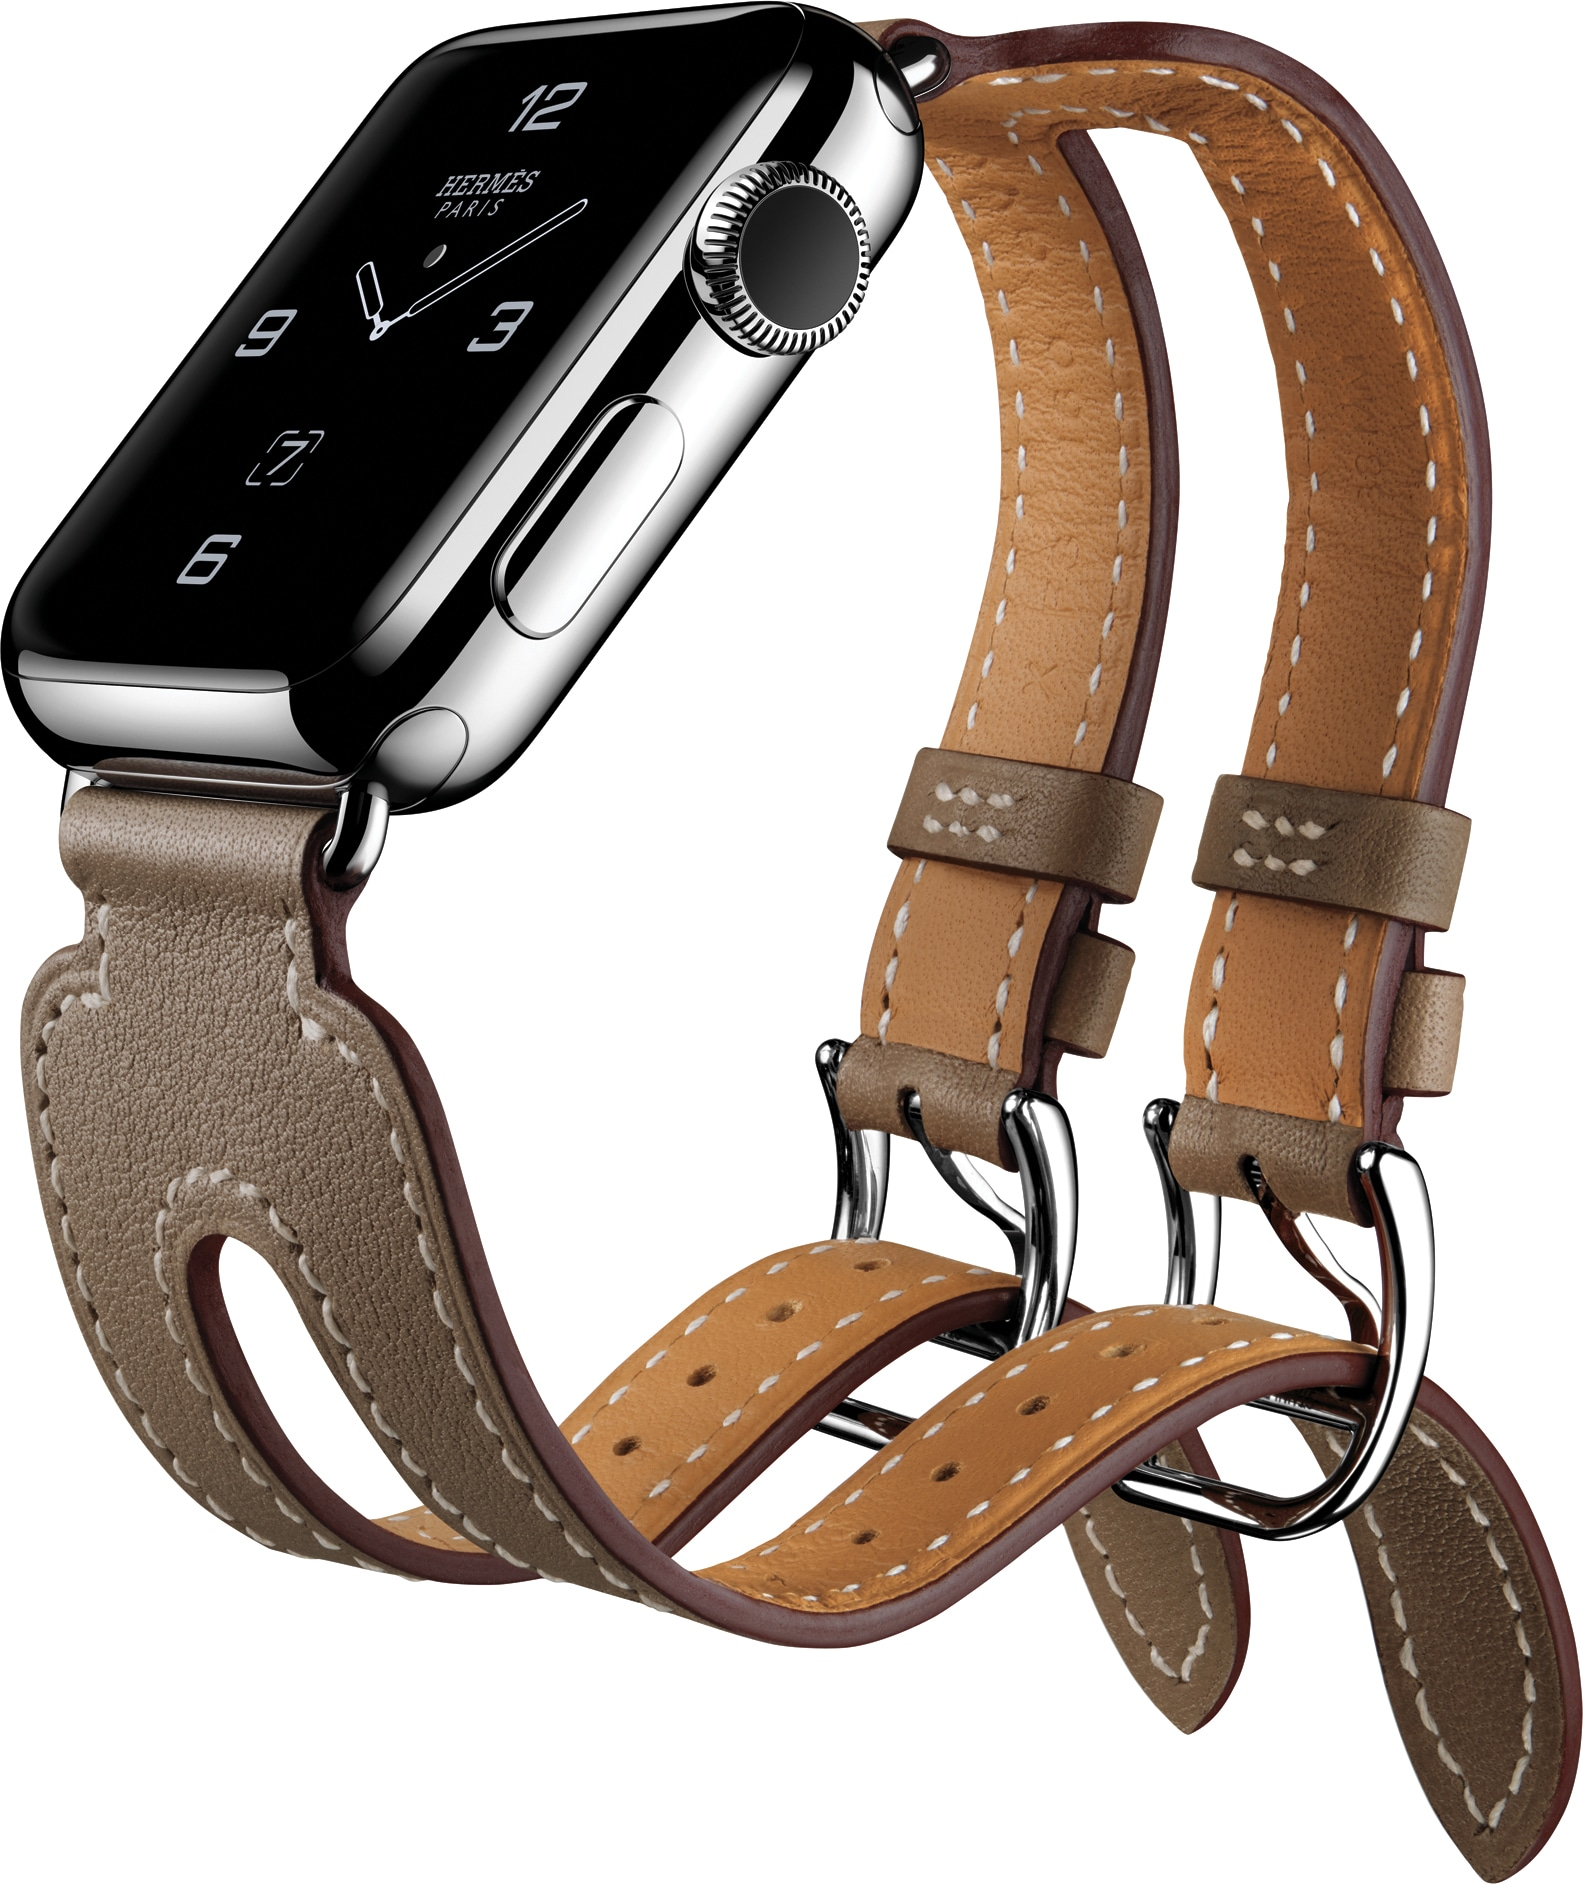 Apple Watch Series 2 com pulseira Hermès